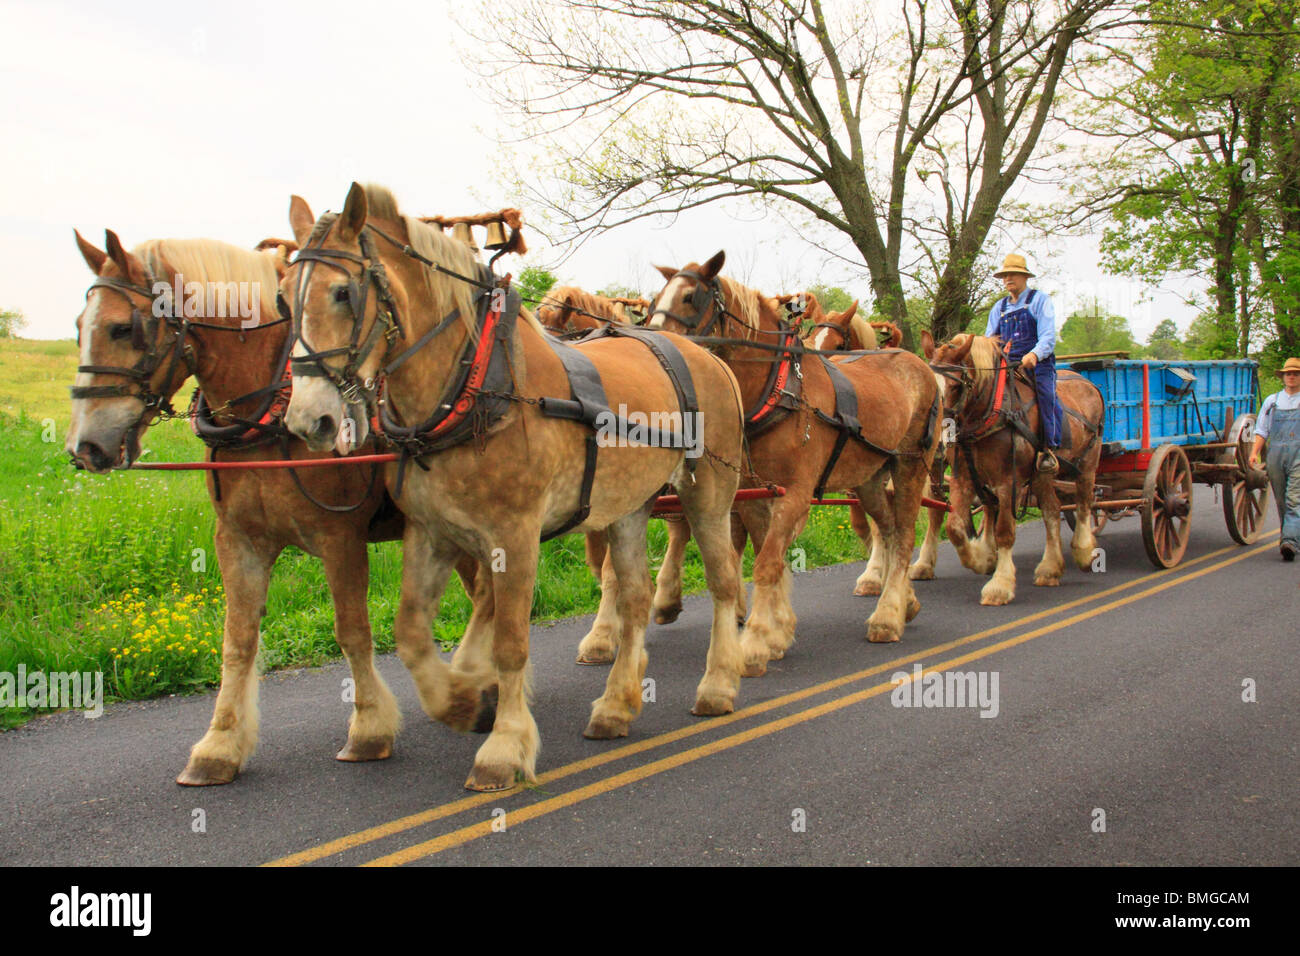 Charlie Lindsay drives six horse bell team, Greencastle, Pennsylvania - Stock Image